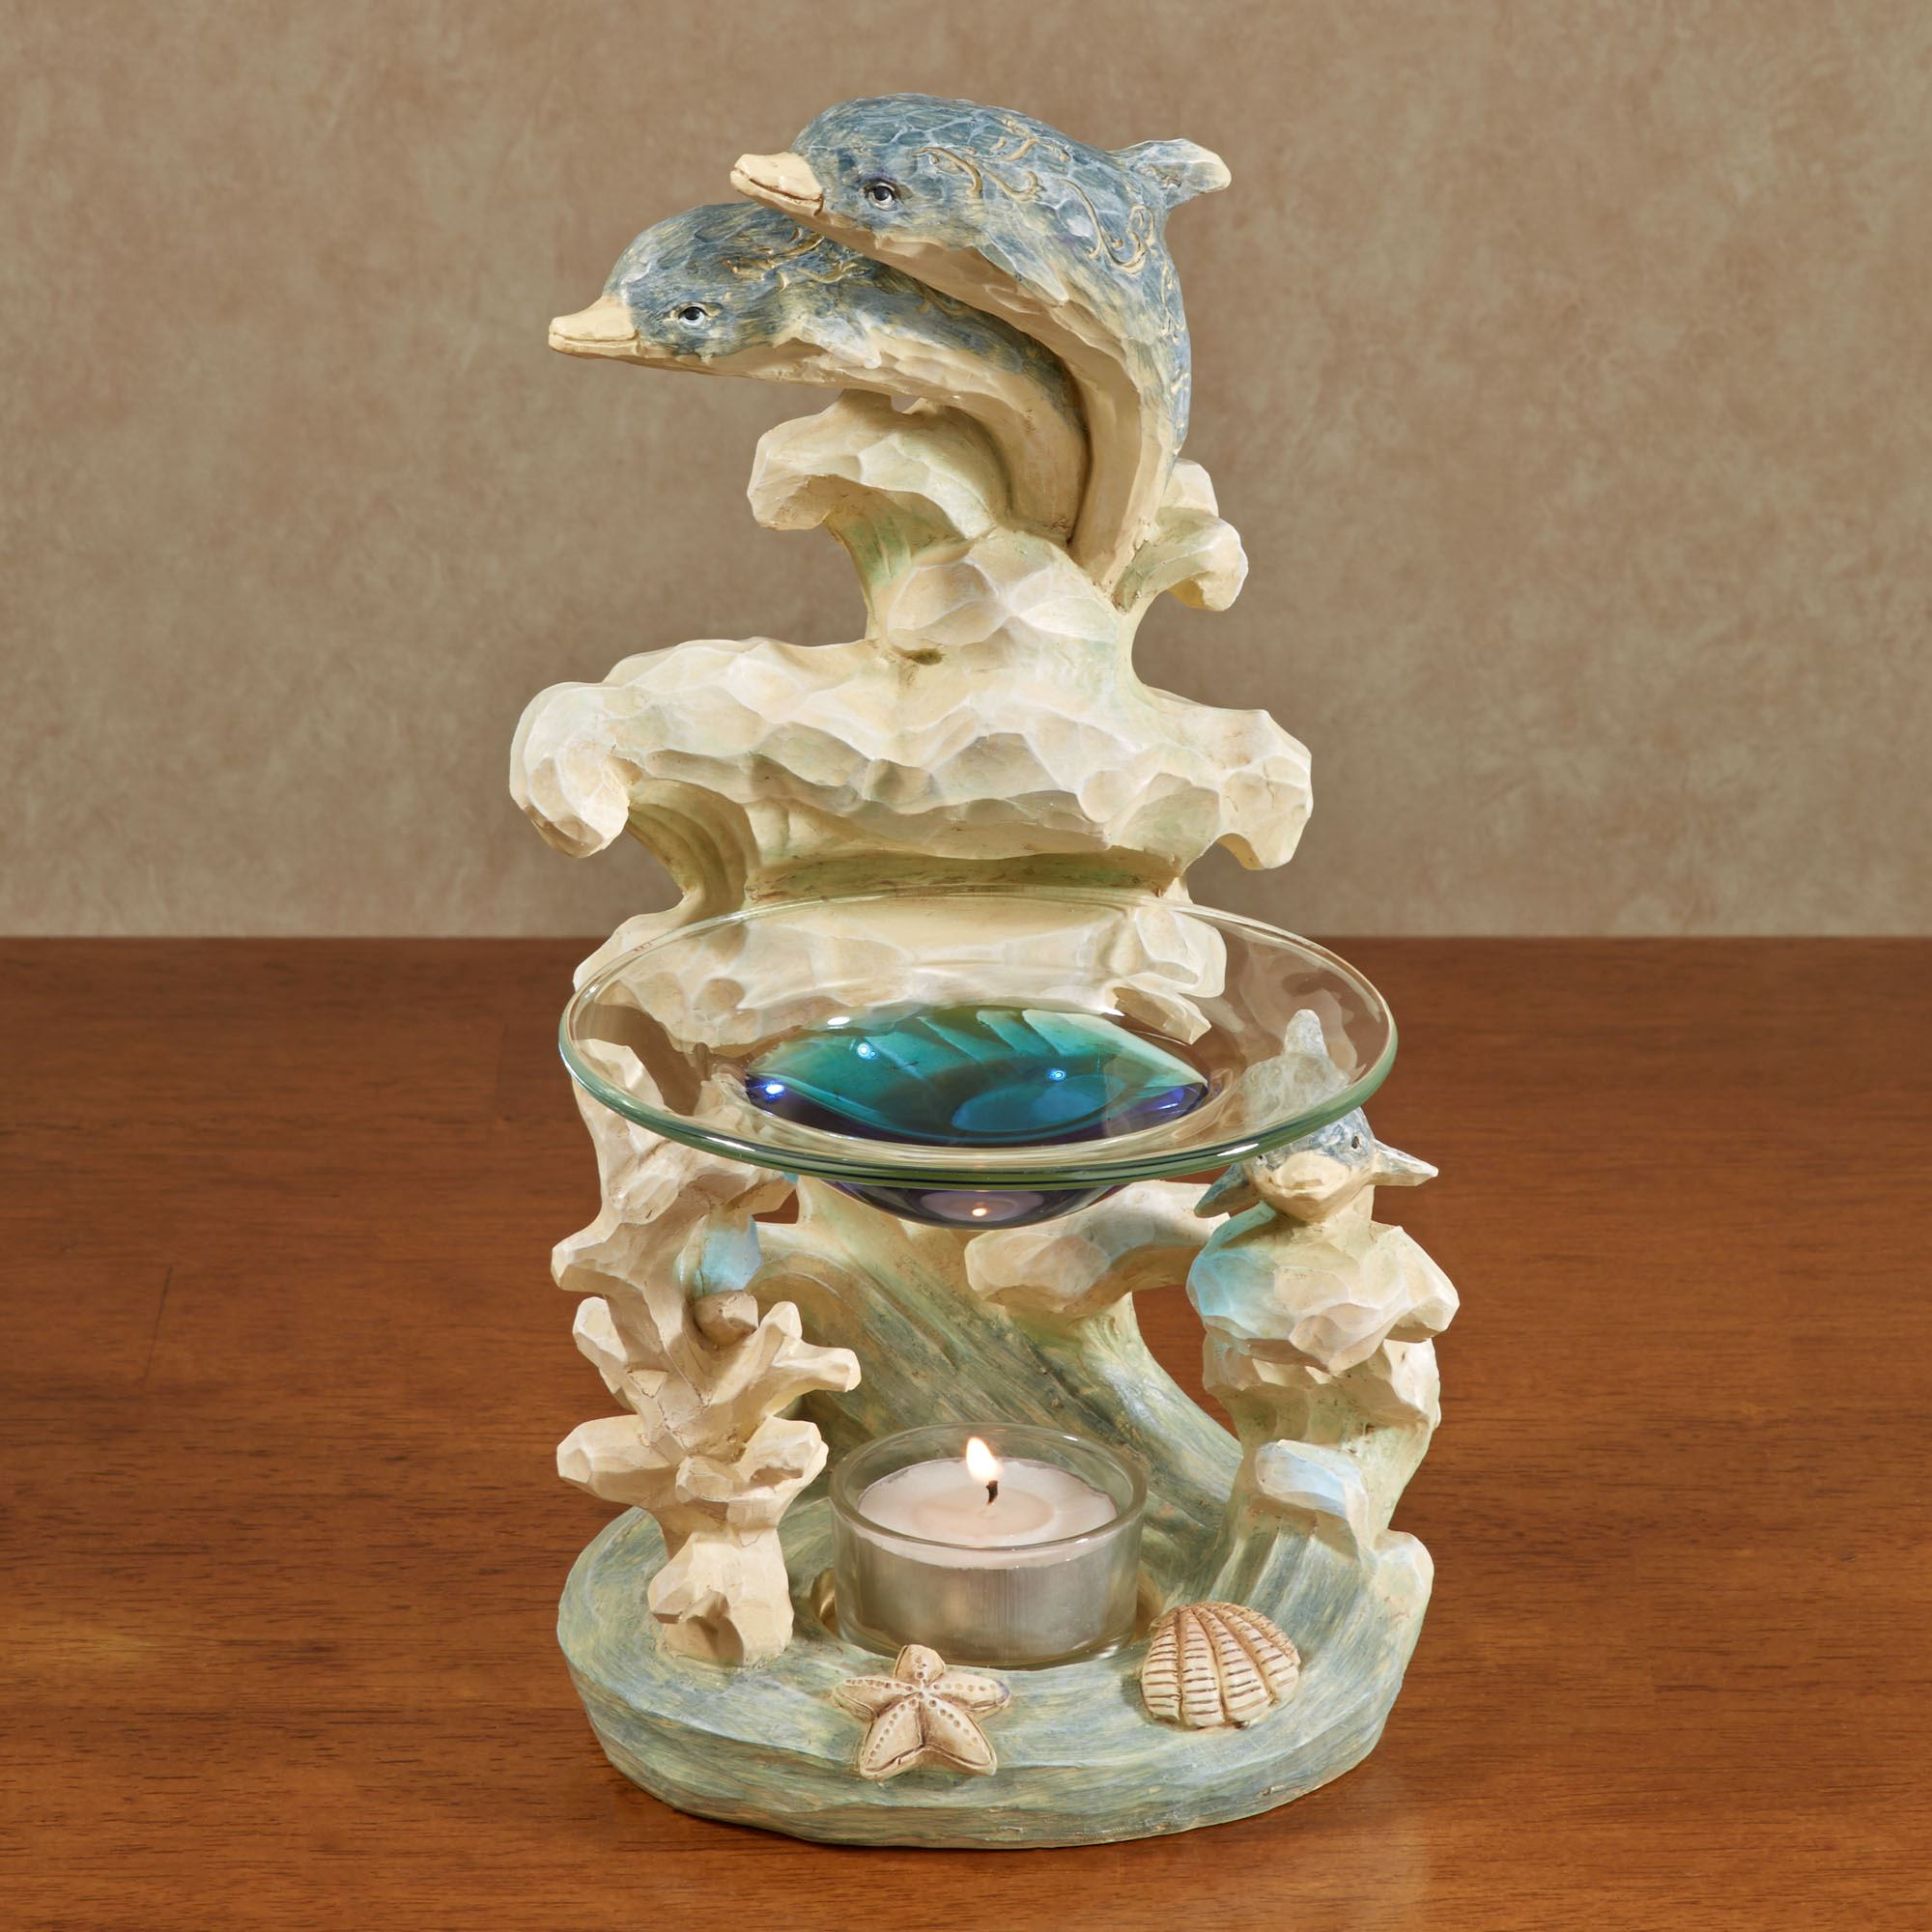 Dolphin Tealight Holder Scented Oil Burner